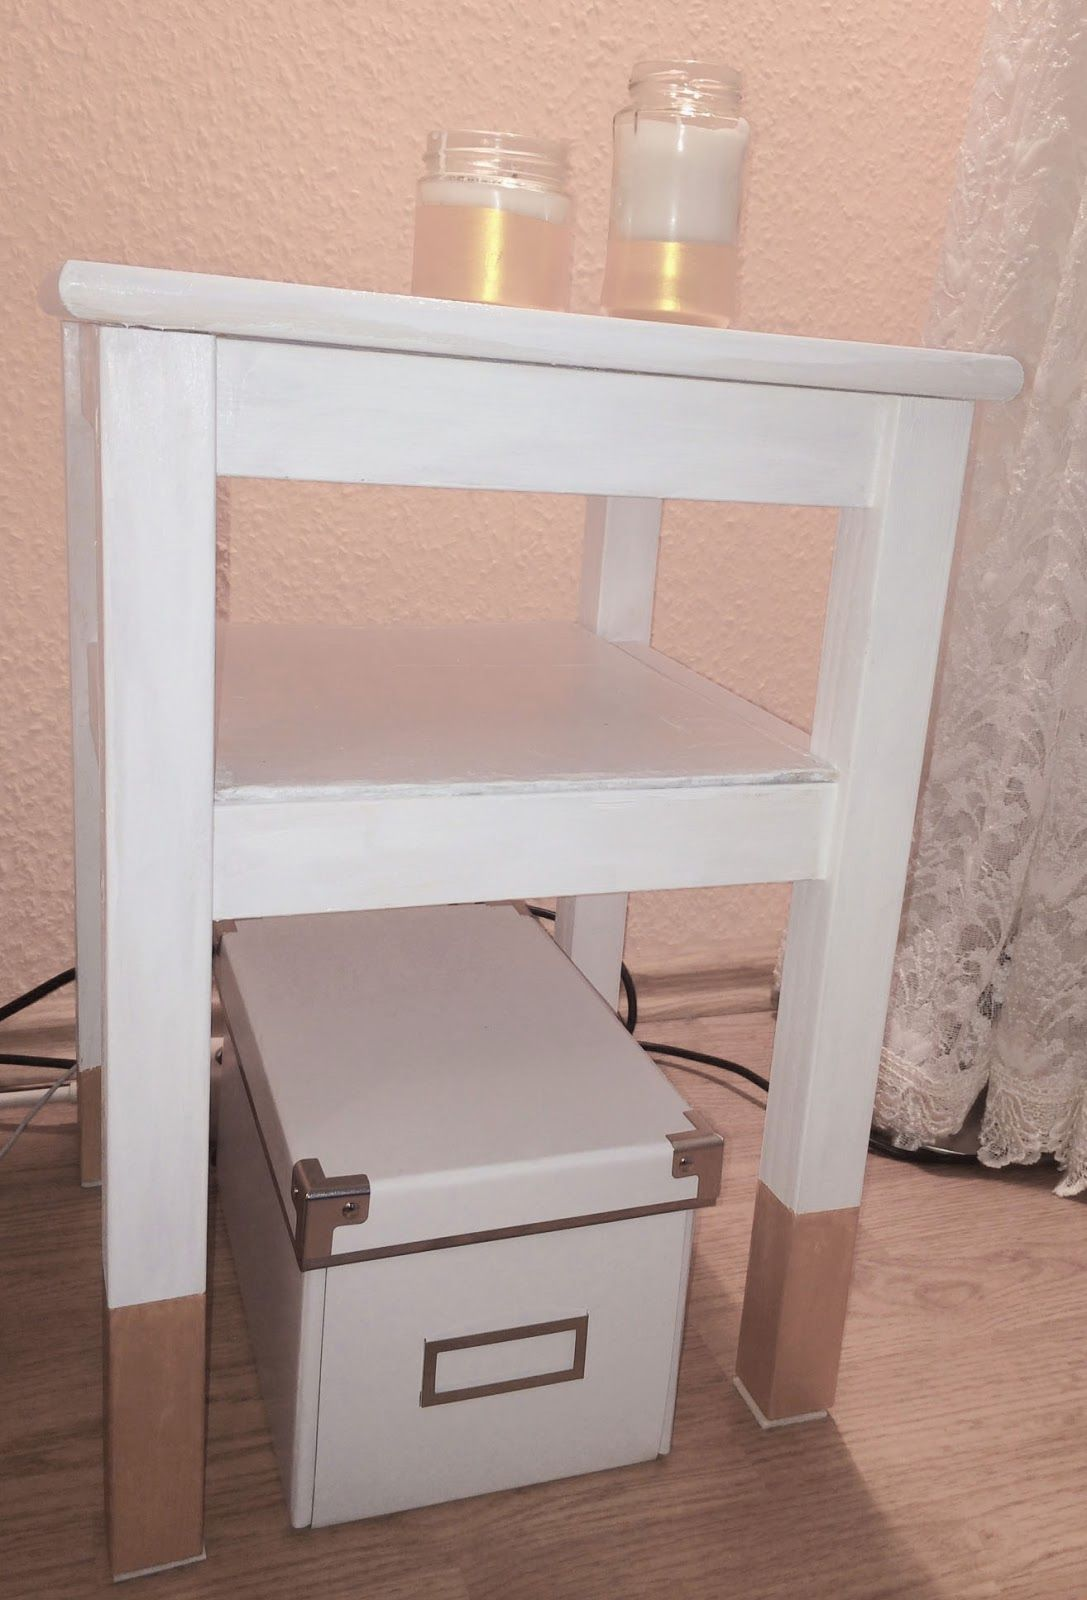 ars textura: diy nachttisch (ikea hack) || just the color, not the